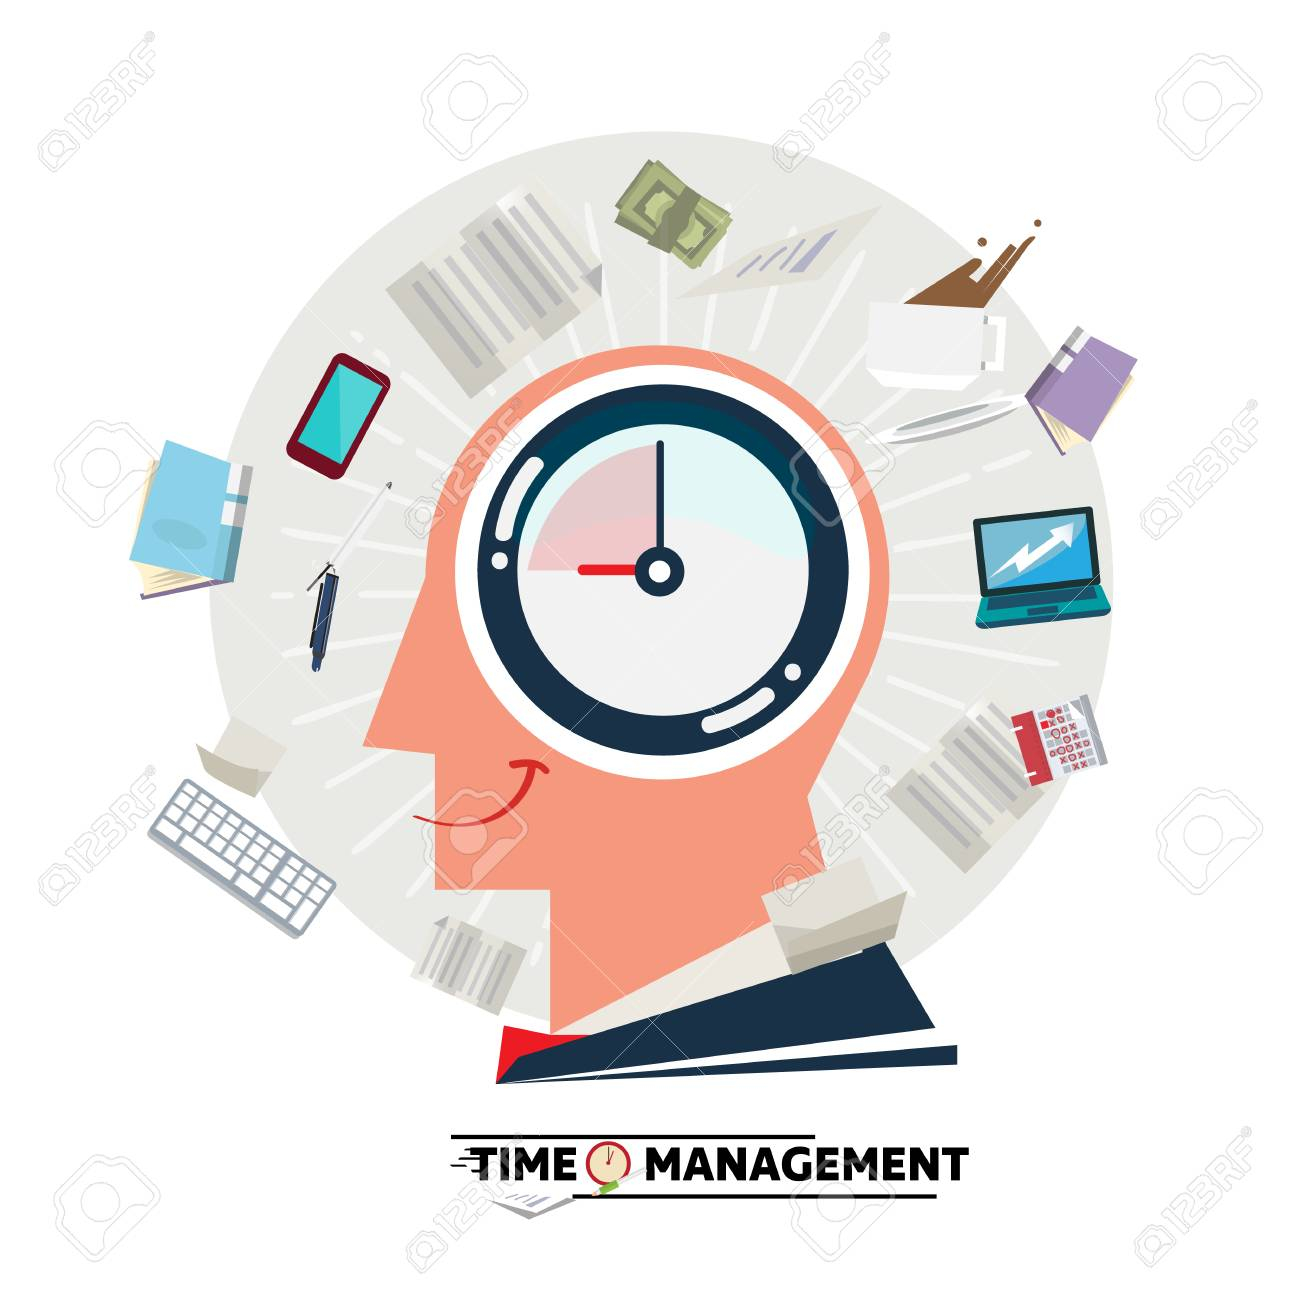 Businessman head with clock inside and blowing stationary and paper. Time management concept - vector illustration - 112203726